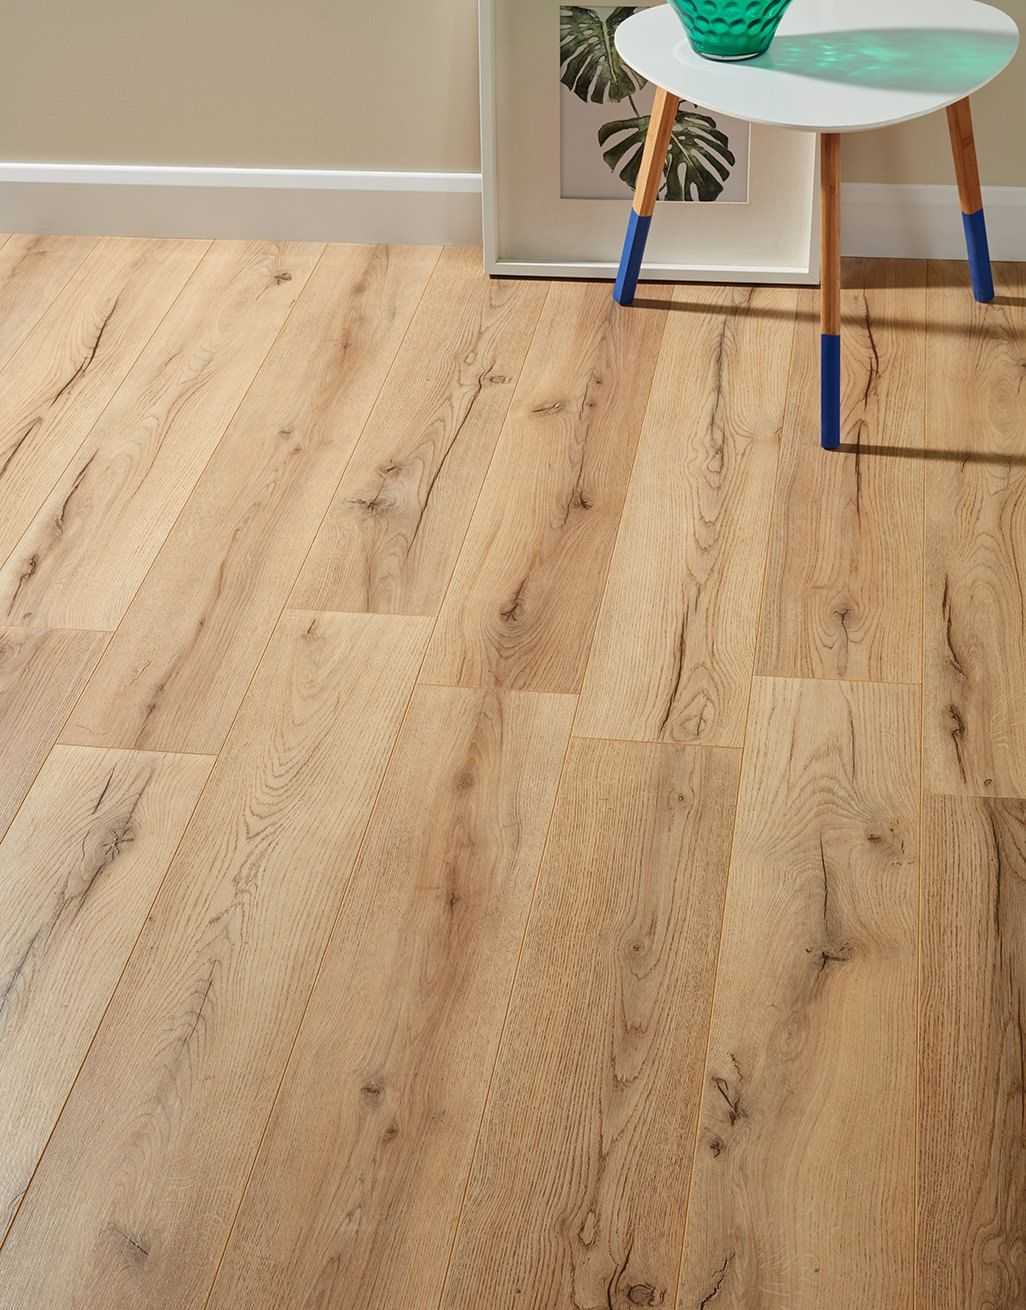 Loft Rustic Oak Laminate Flooring Oak laminate